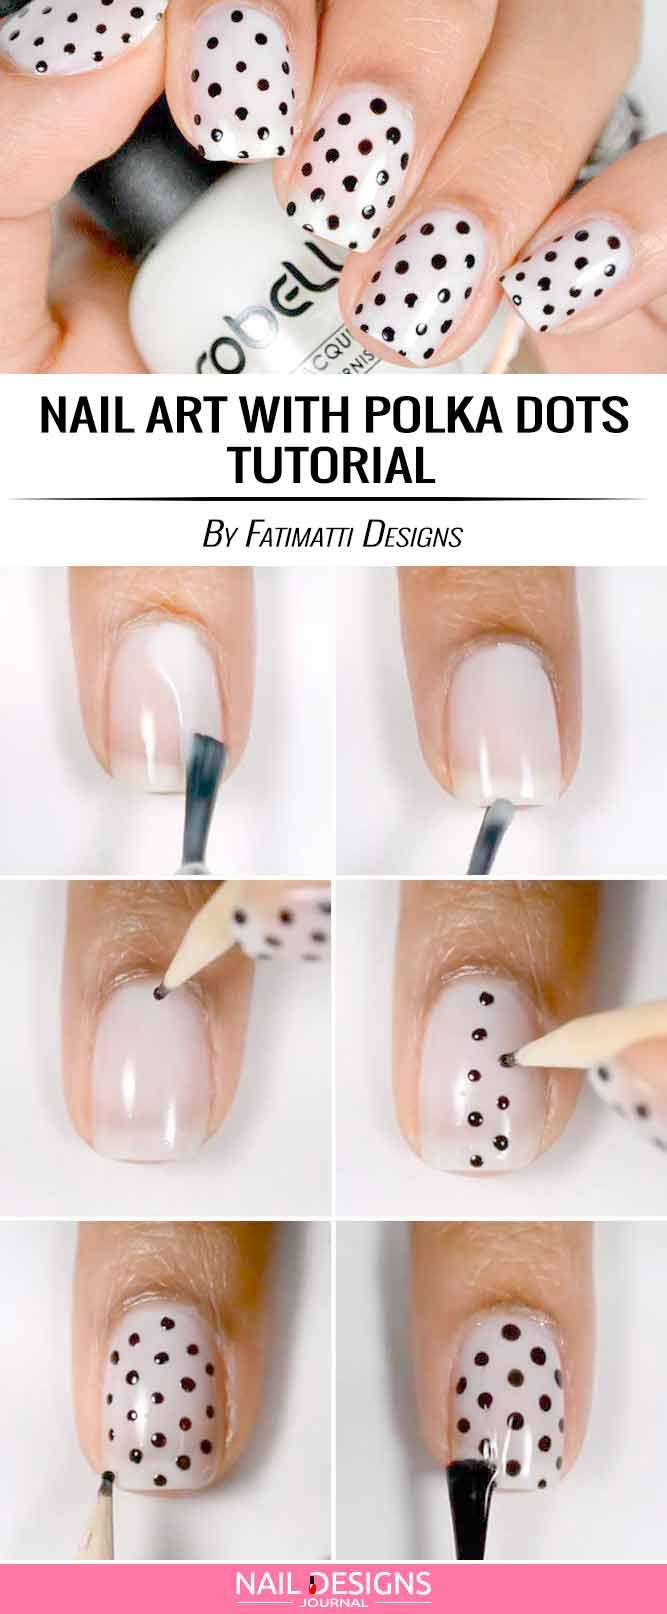 Try These Easy Nail Designs Naildesignsjournal Com Nail Designs Summer Diy Nail Designs Easy Diy Diy Nail Designs